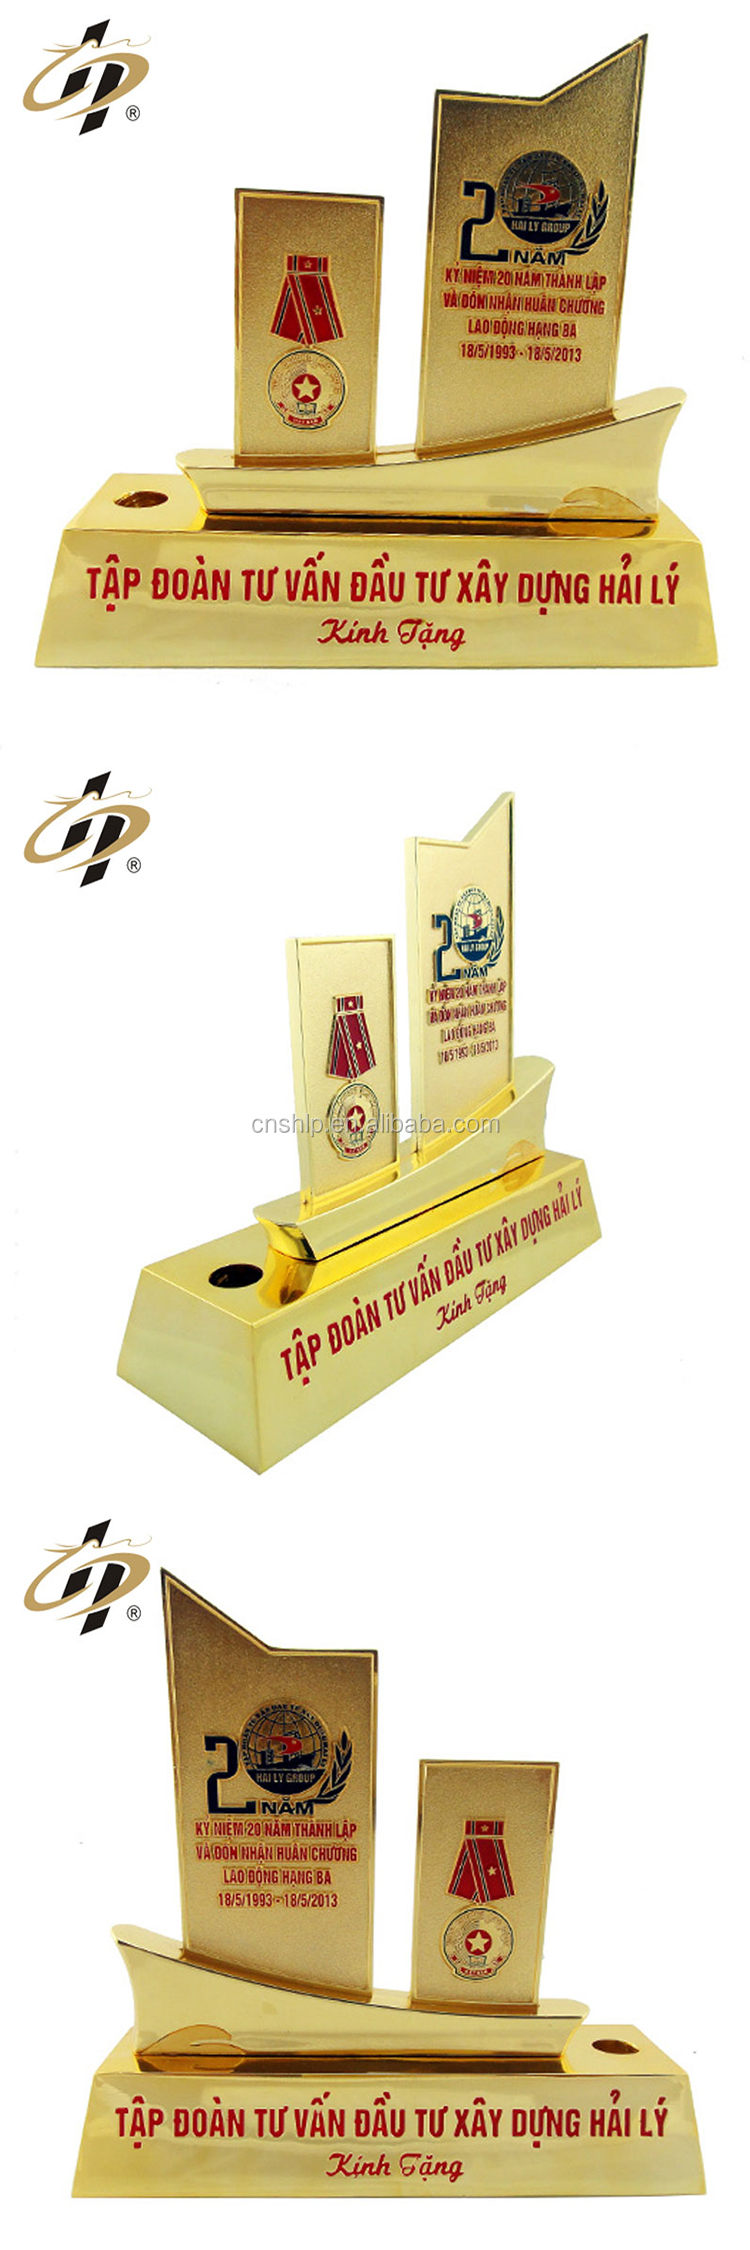 Professional Cheap Customized Vietnamese metal trophy